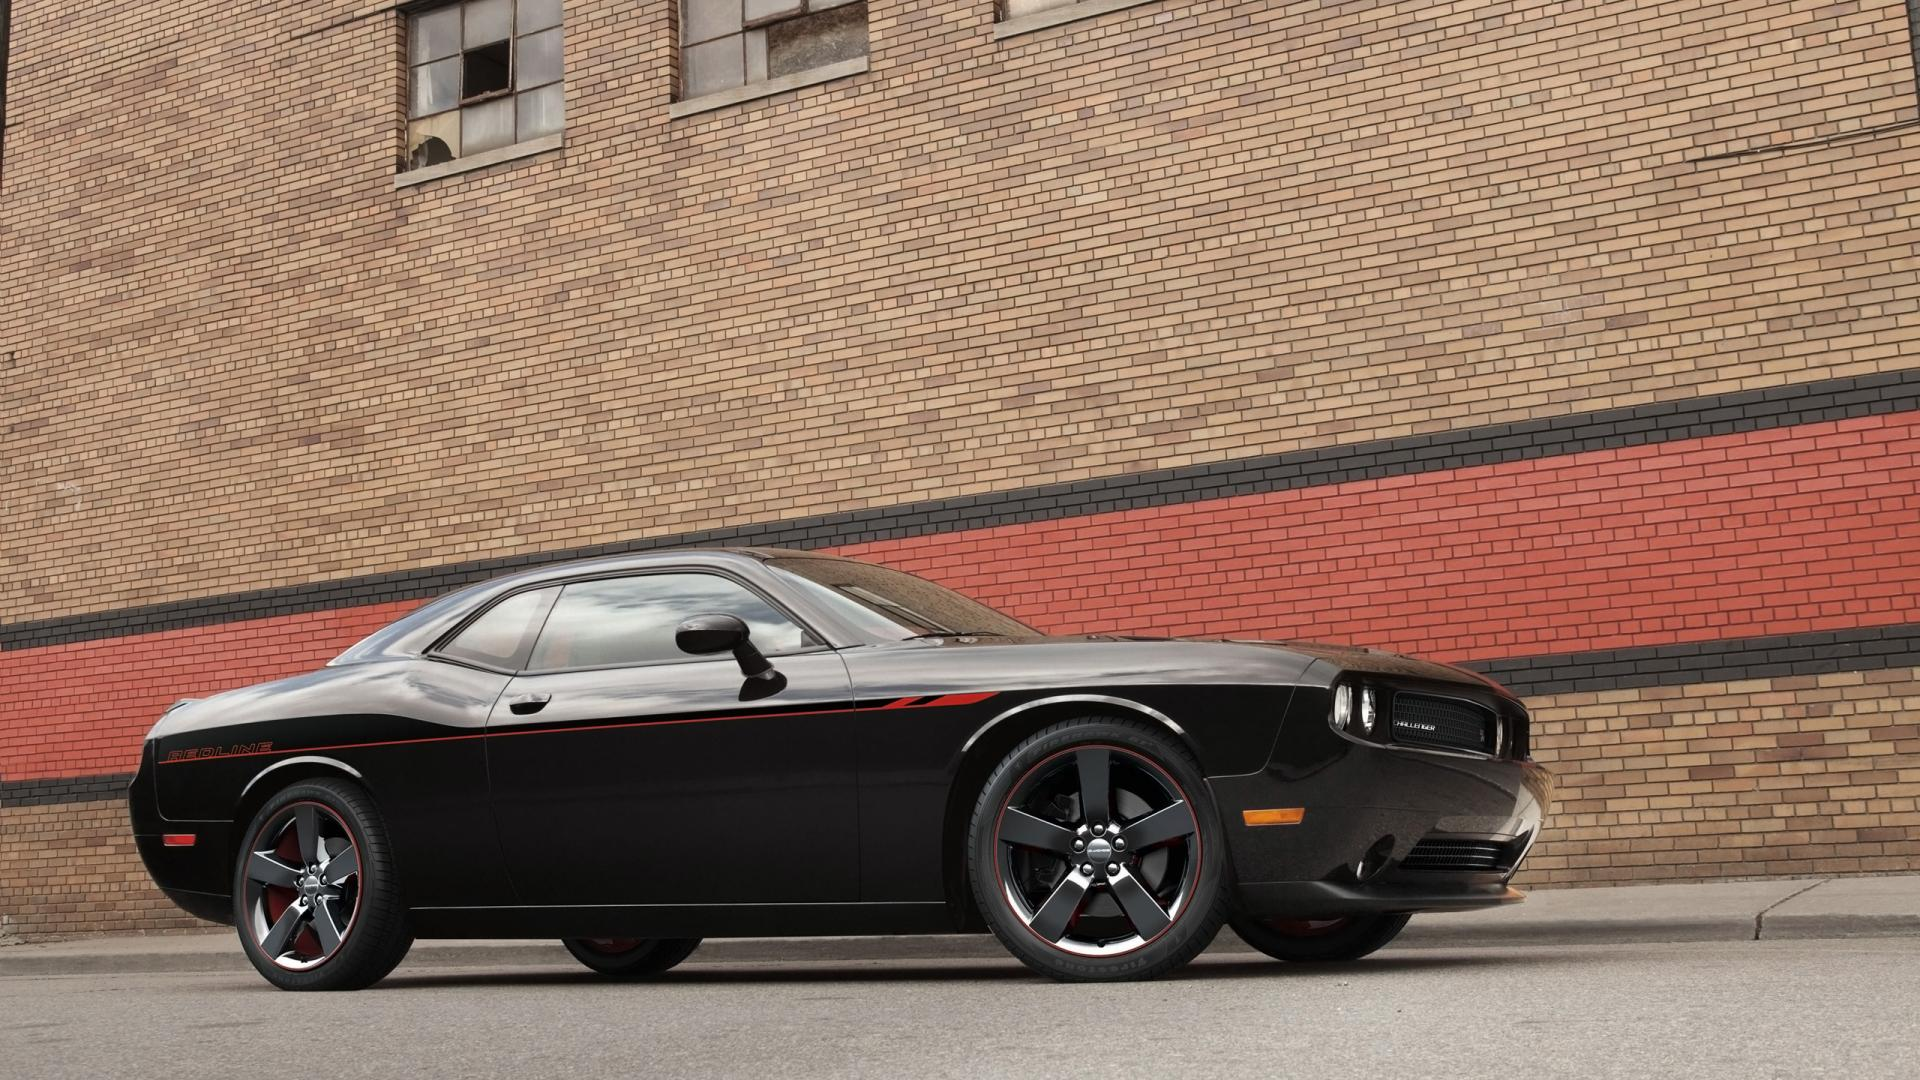 1920x1080 - Dodge Challenger Rallye Wallpapers 32